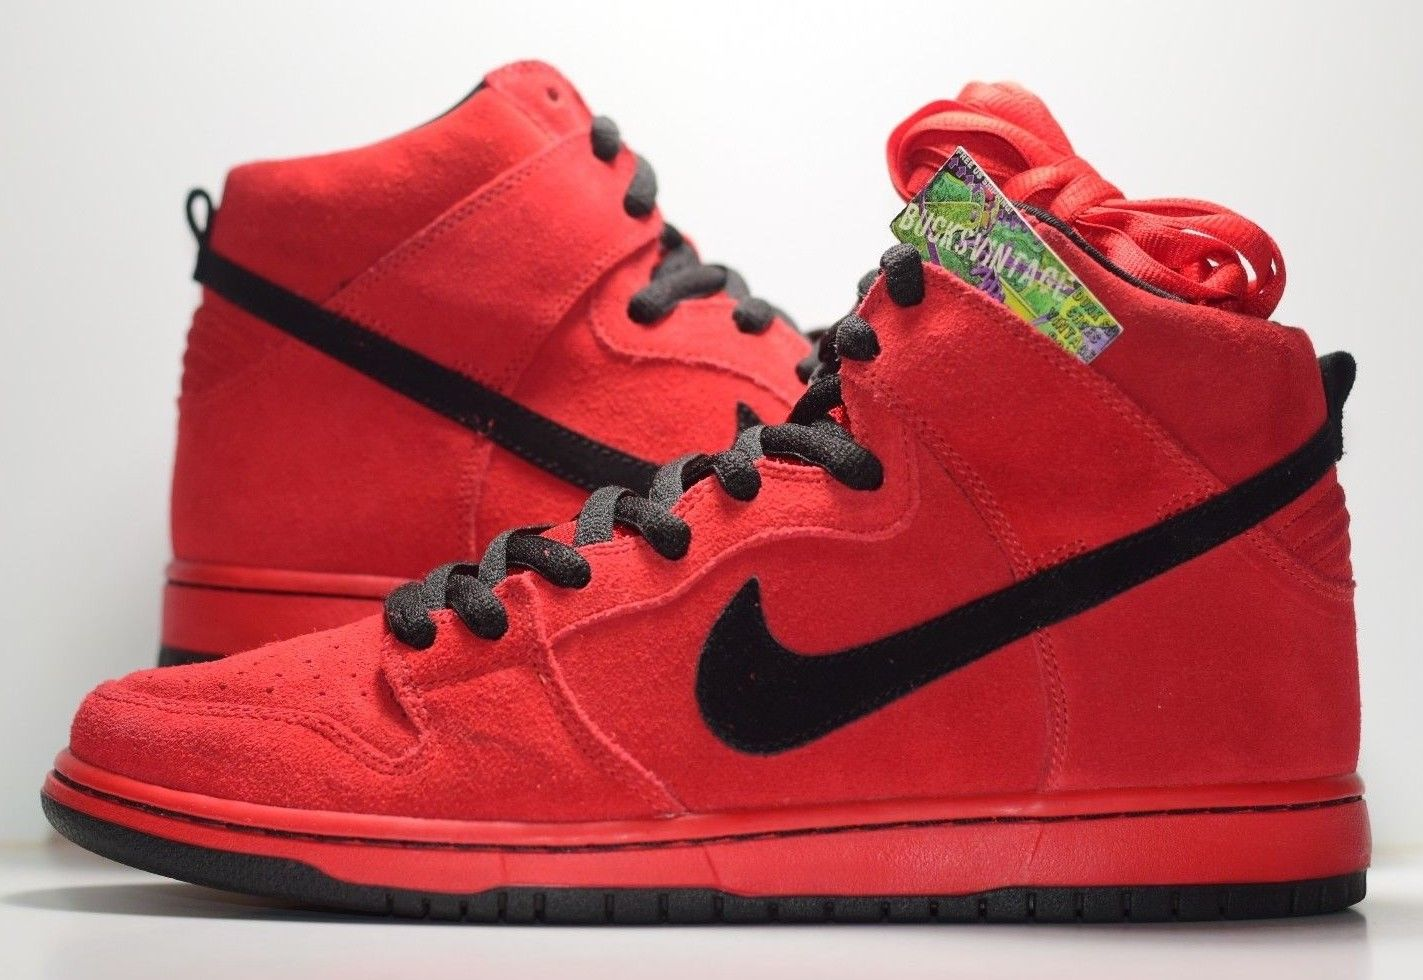 premium selection de3a0 fc234 ... amazon size 10 2011 nike dunk sb red devil high 305050 600 sample og  dd3bd f0f11